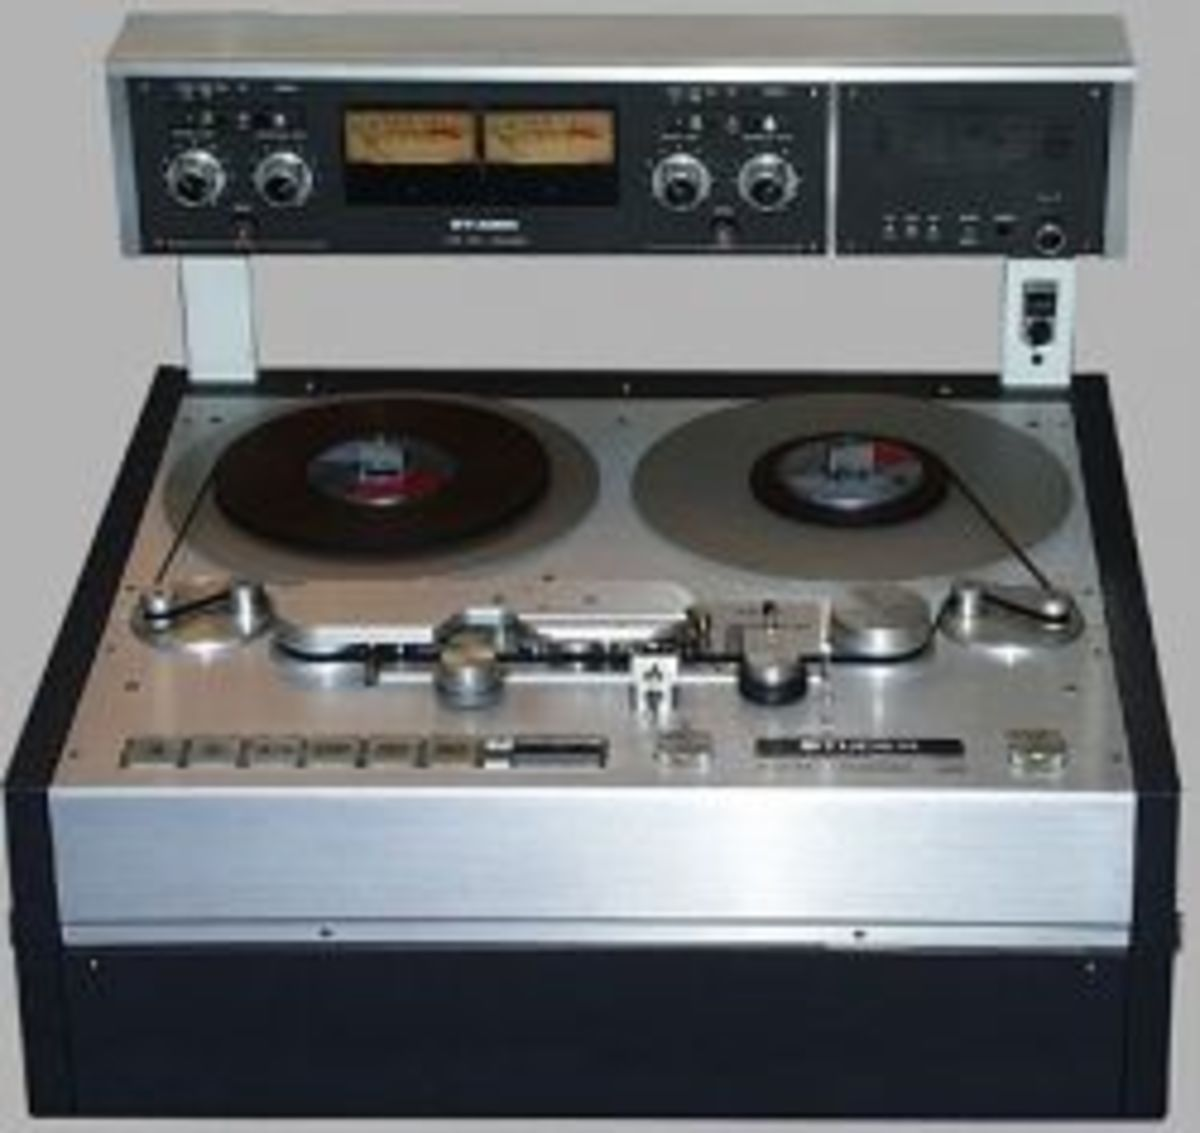 Line Up Specification for BBC Reel-to-Reel Tape Decks